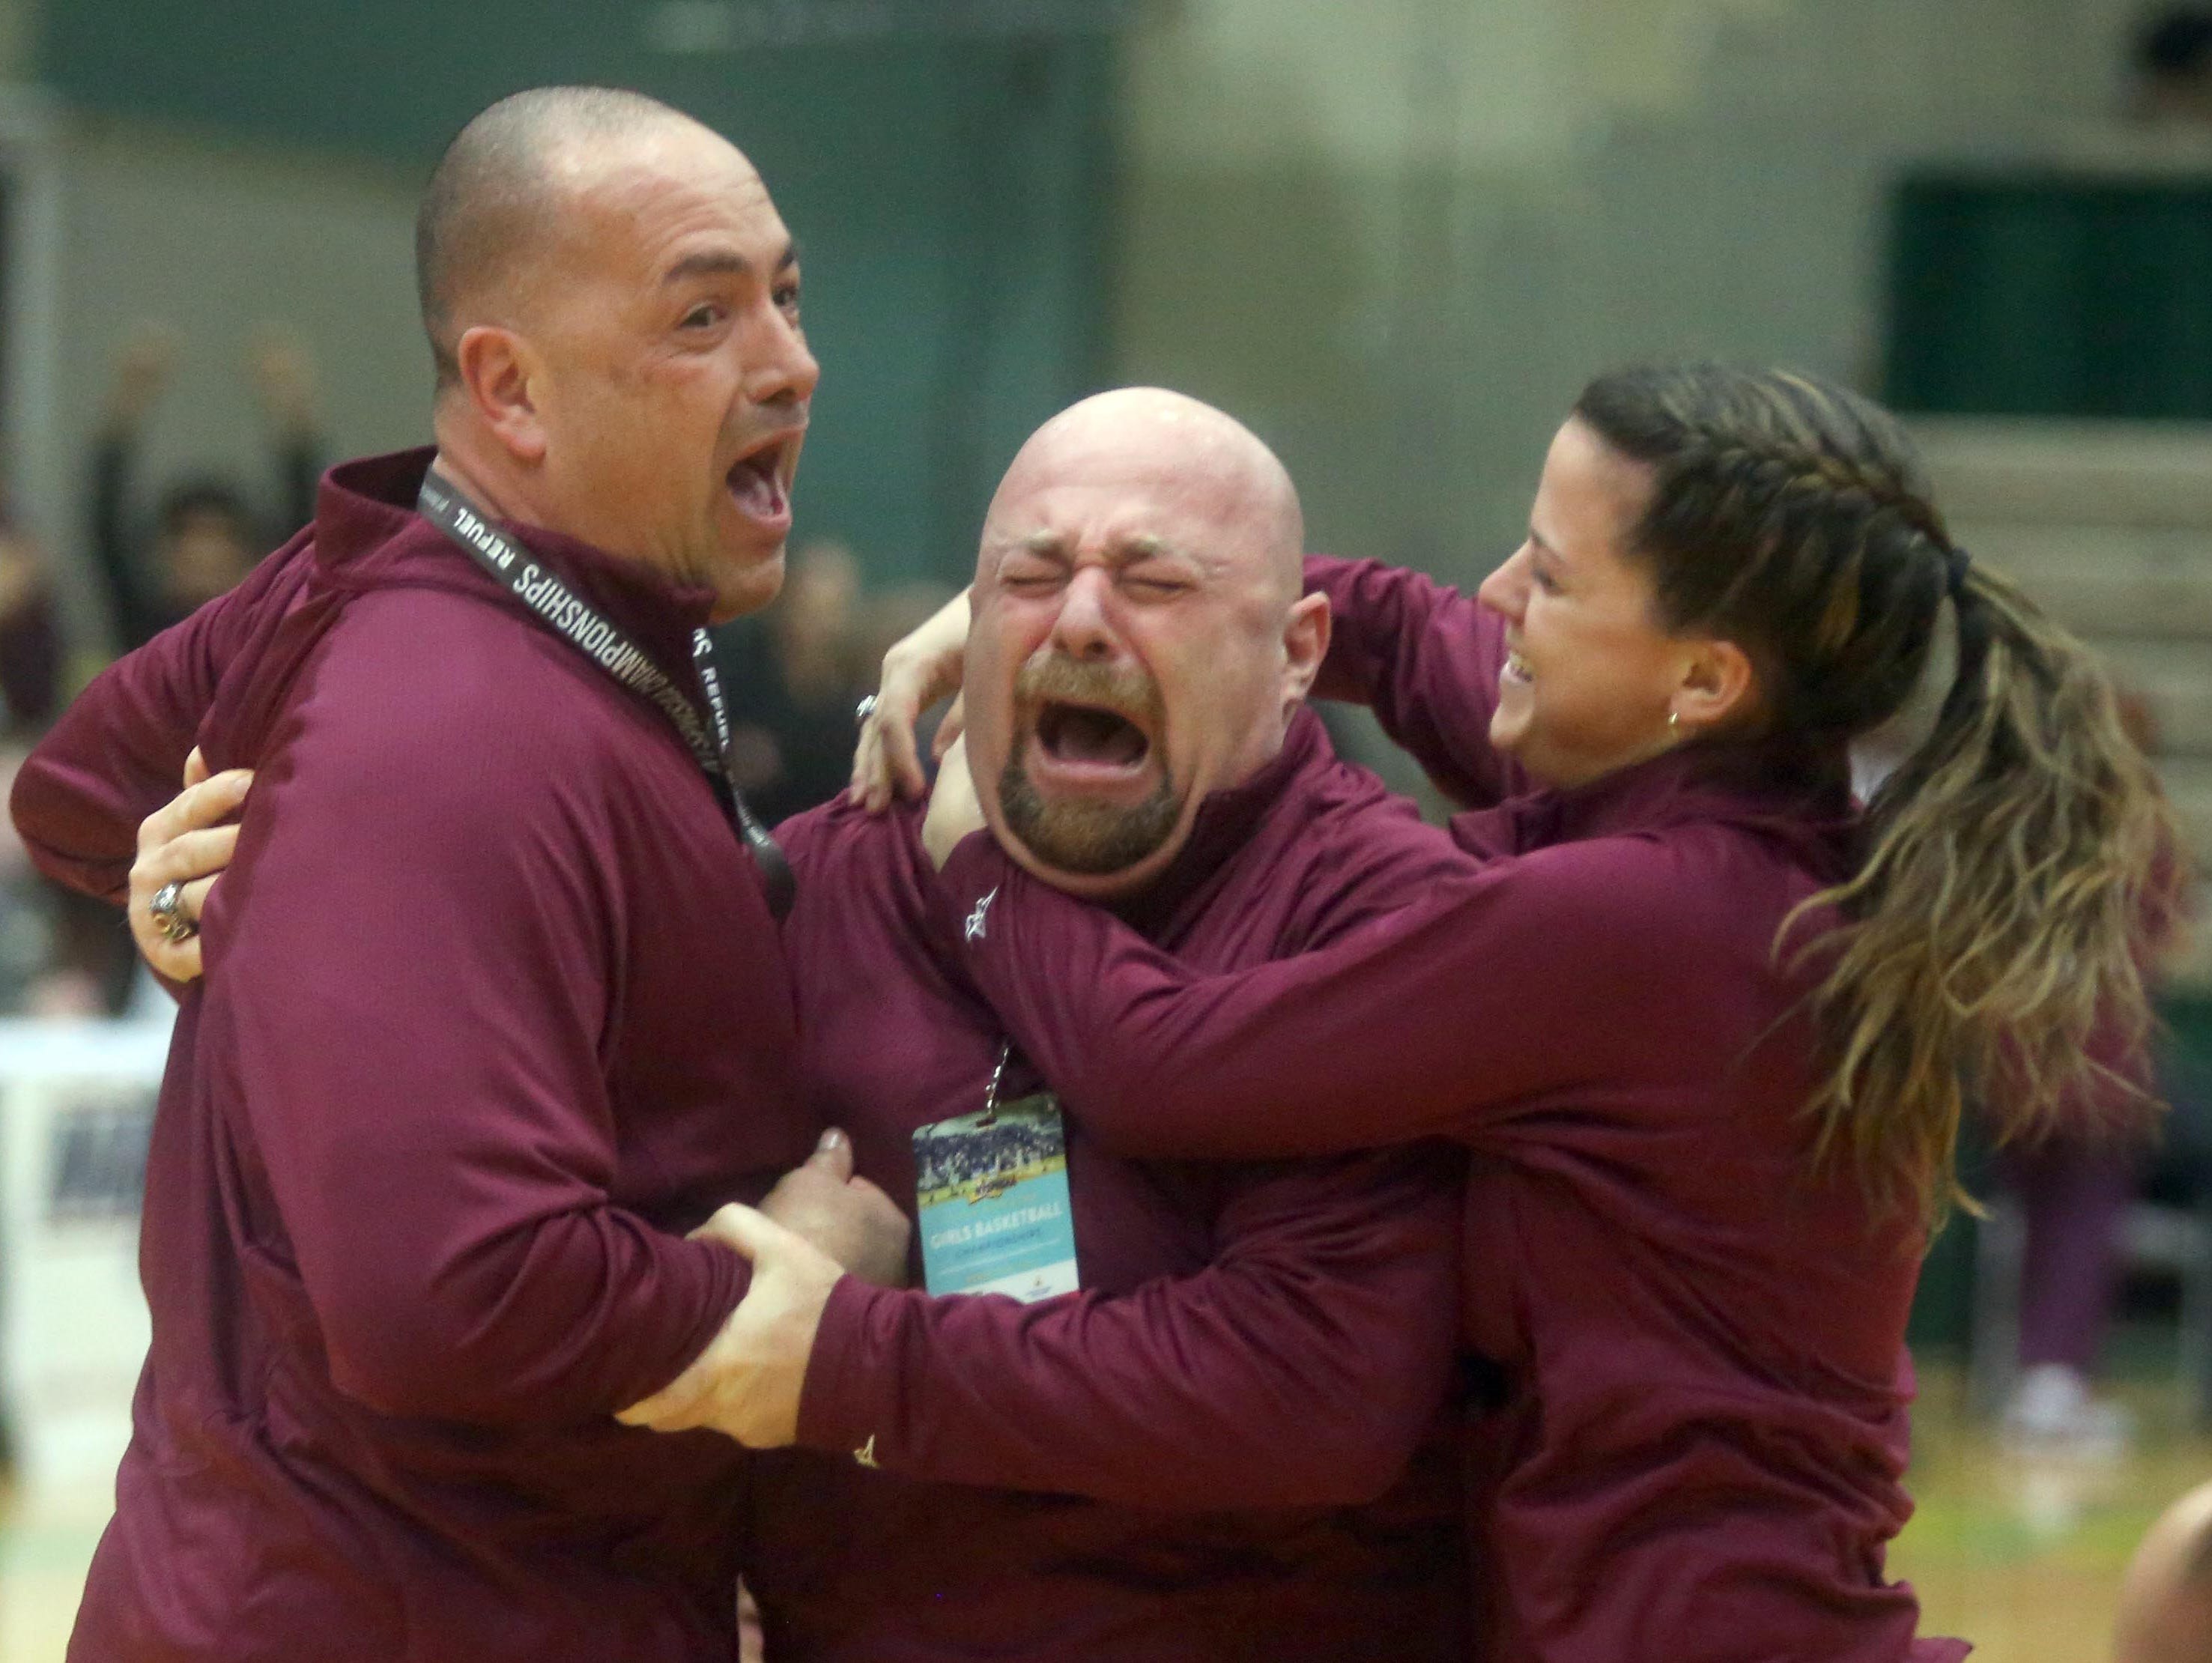 Ossining head coach Dan Ricci, center, celebrates with his assistant coaches after Ossining defeated Shenendehowa 69-66 to win the New York State Class AA championship at Hudson Valley Community College in Troy March 12, 2016.